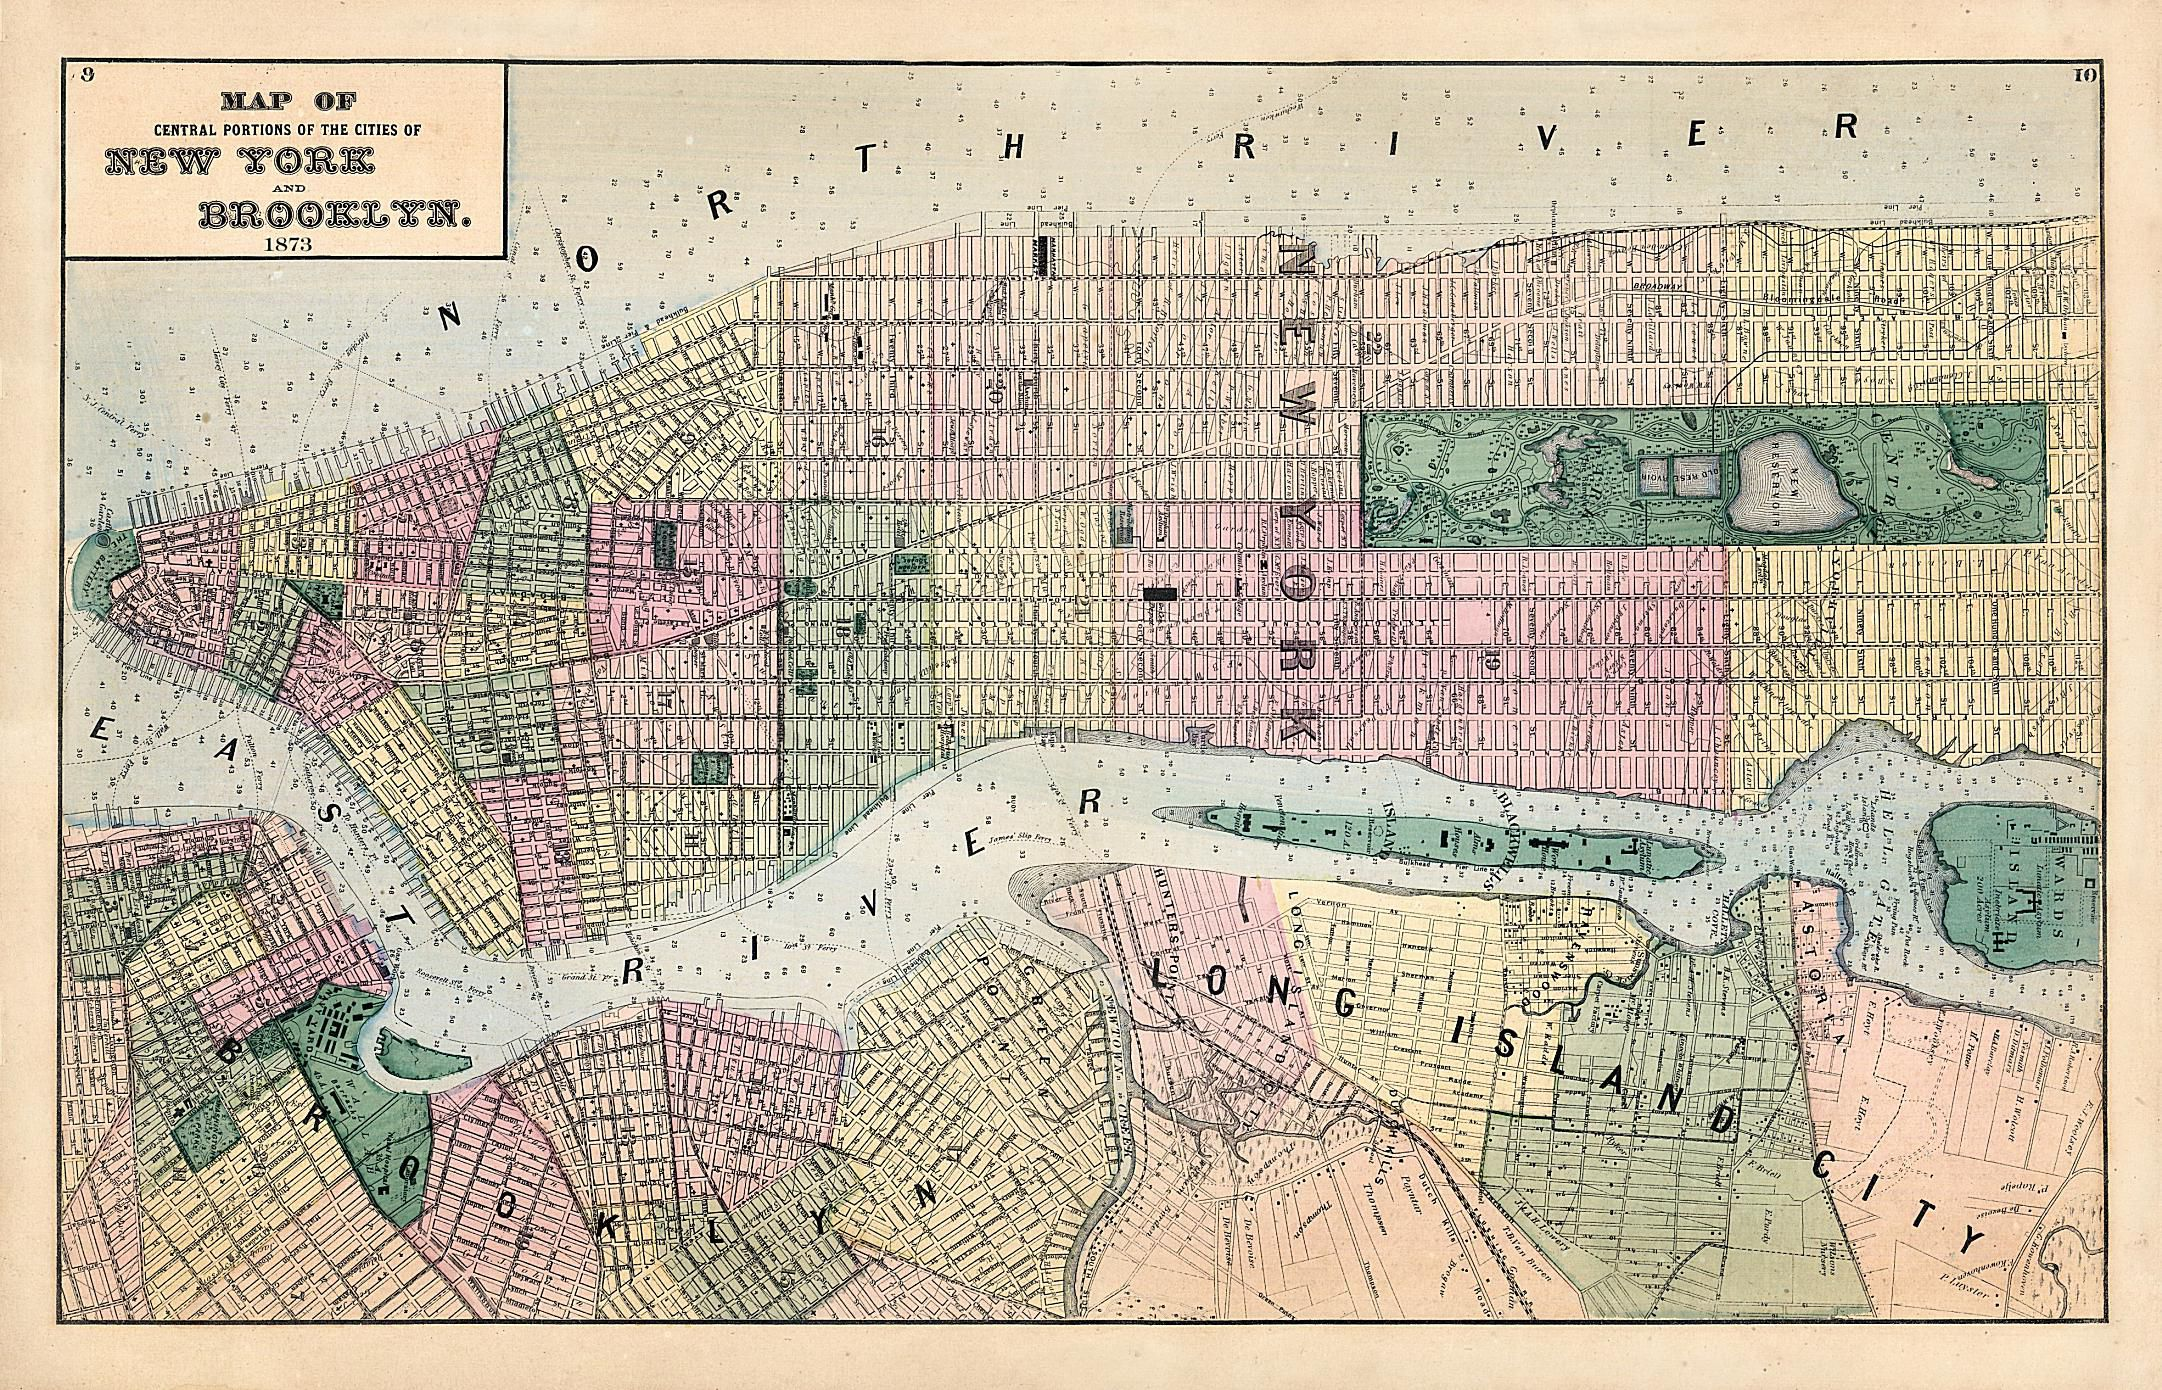 Historic Map Works Historic Land Ownership Maps & Atlases Online Historic Map Works